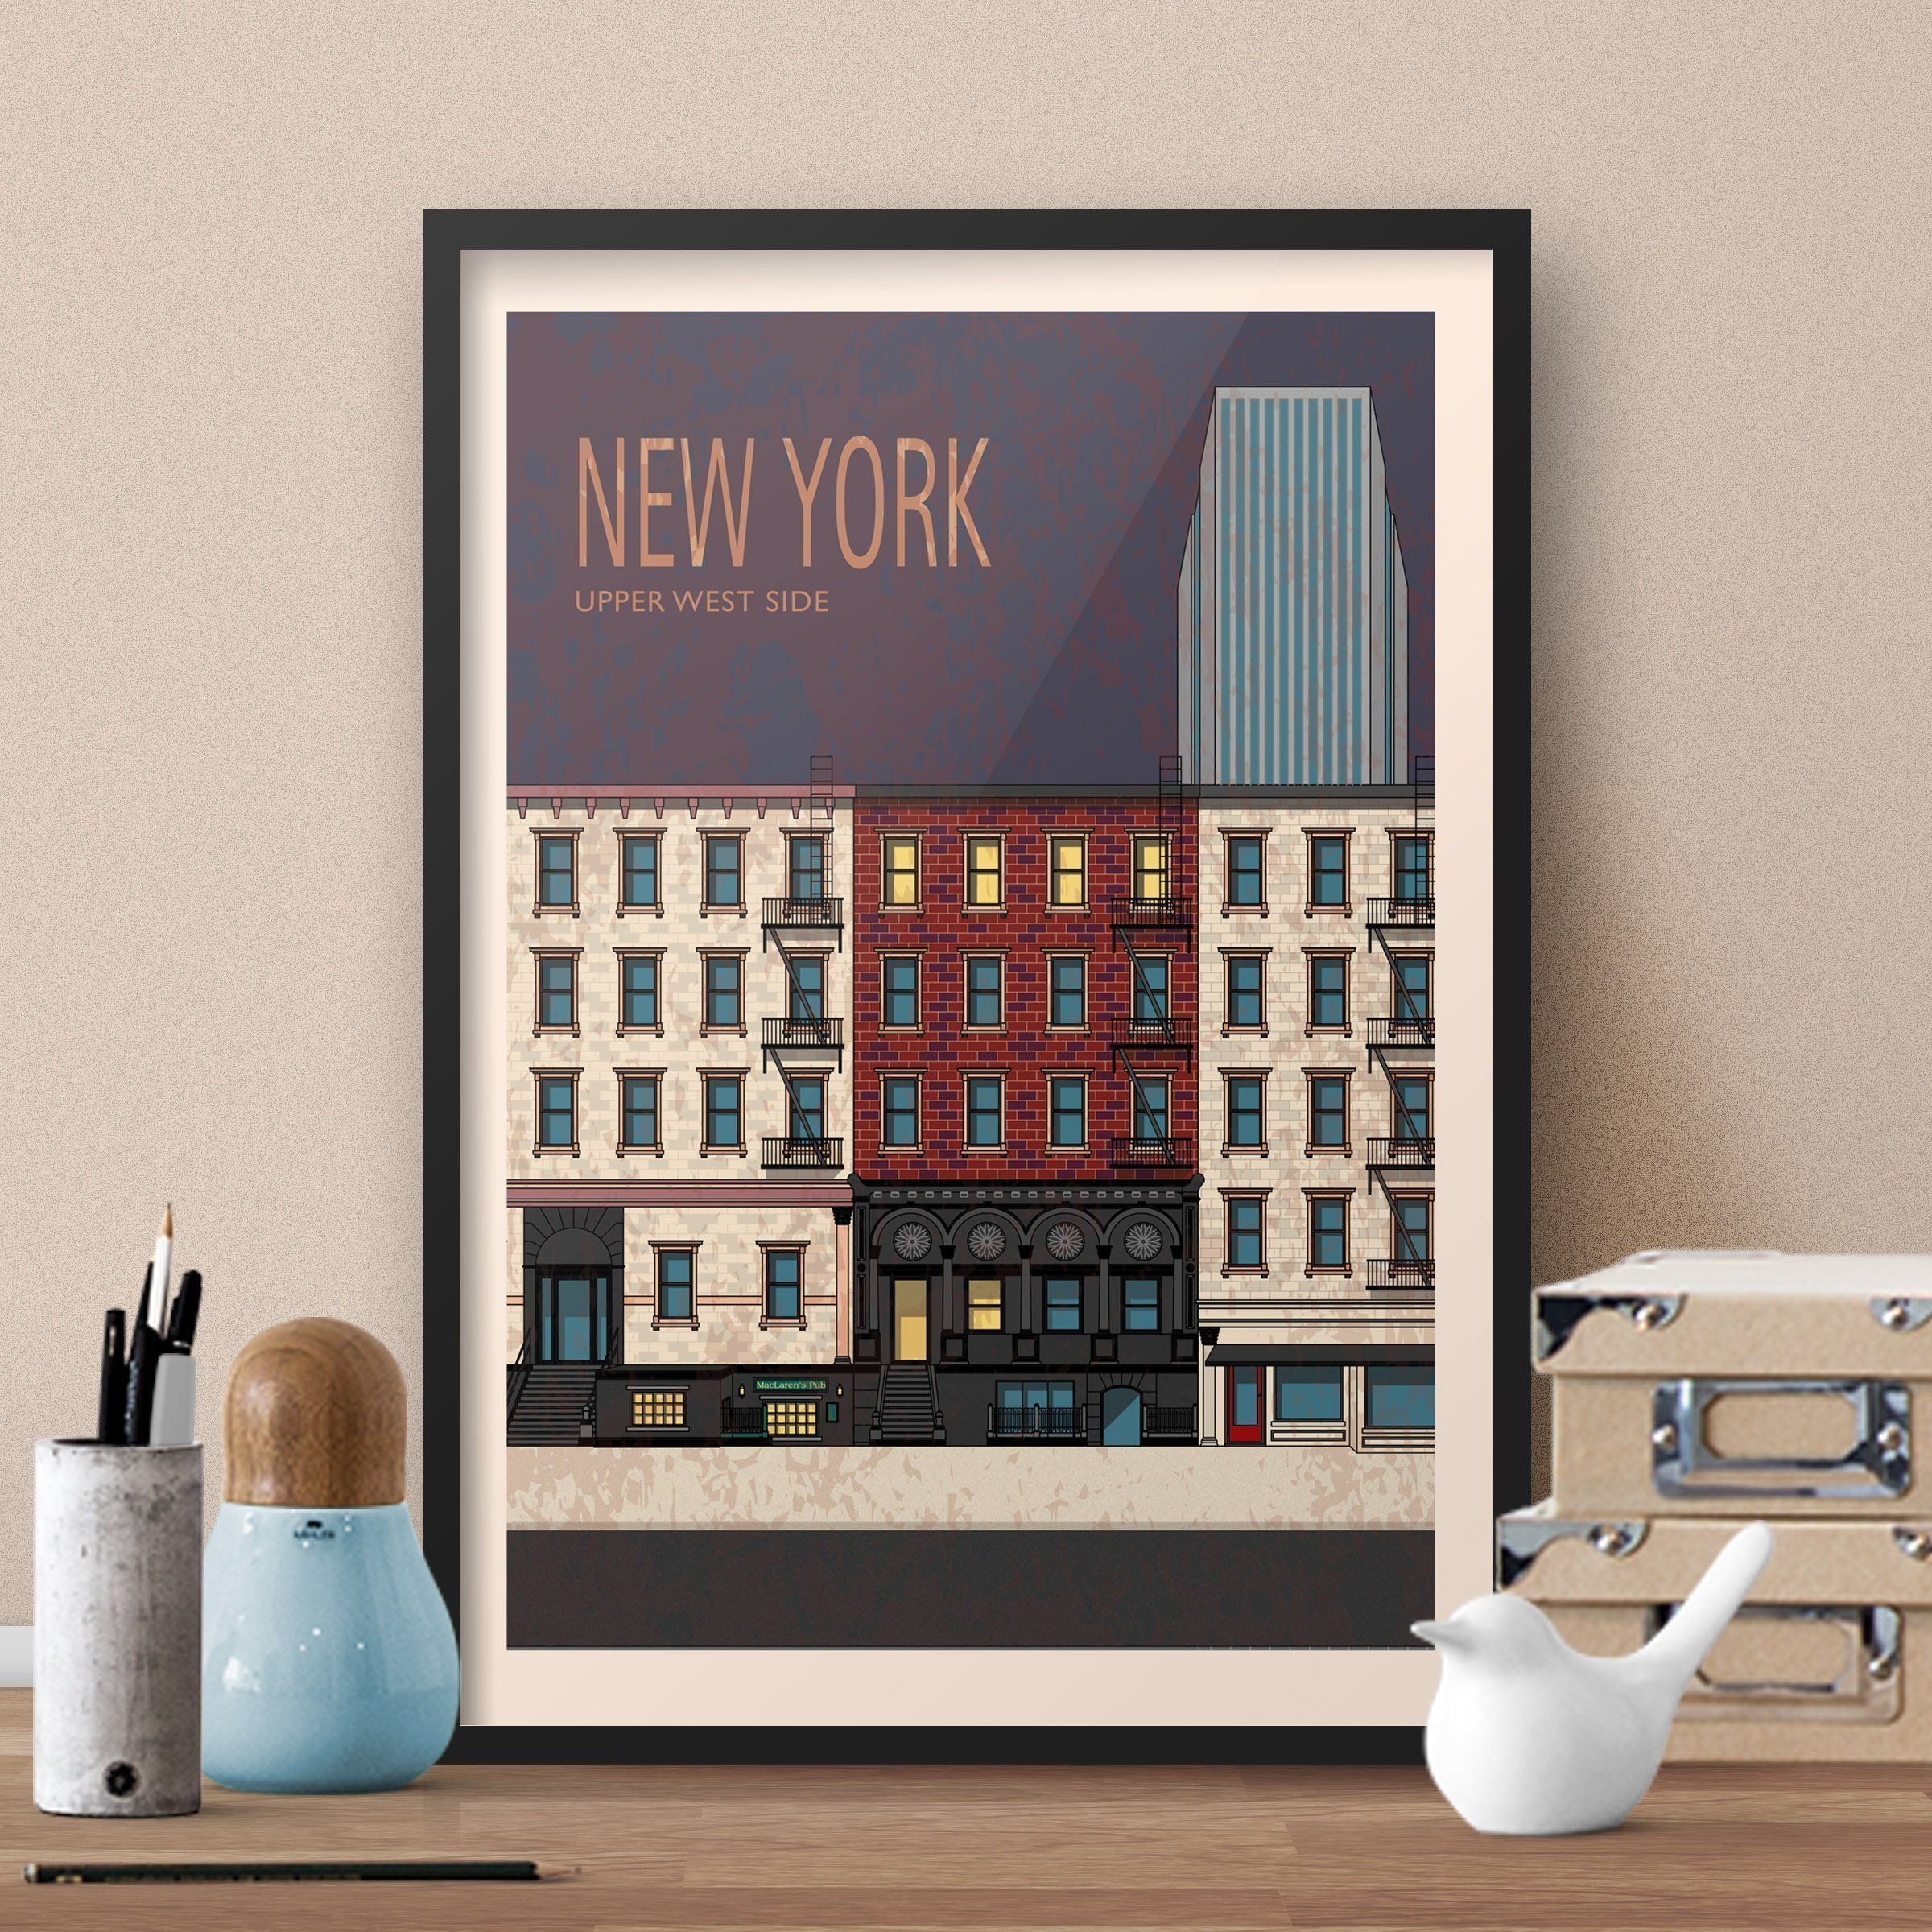 How I Met Your Mother TV show themed New York Travel Poster